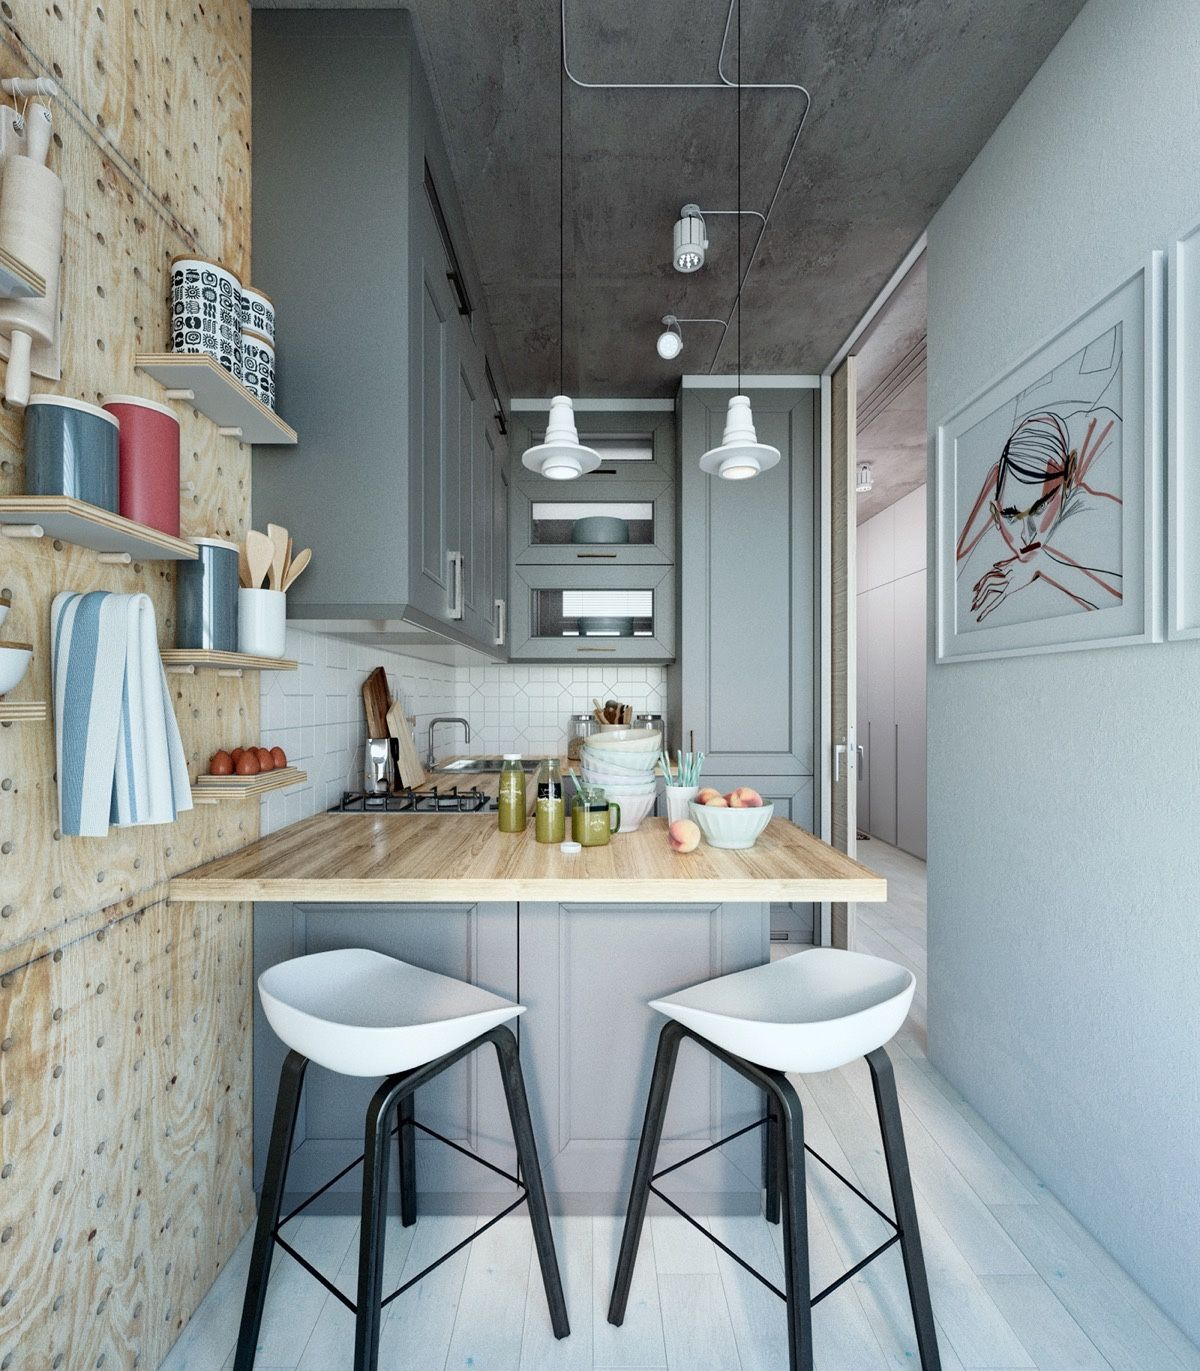 Minimalist design is the best design for kitchen you can apply scandinavian style to match it